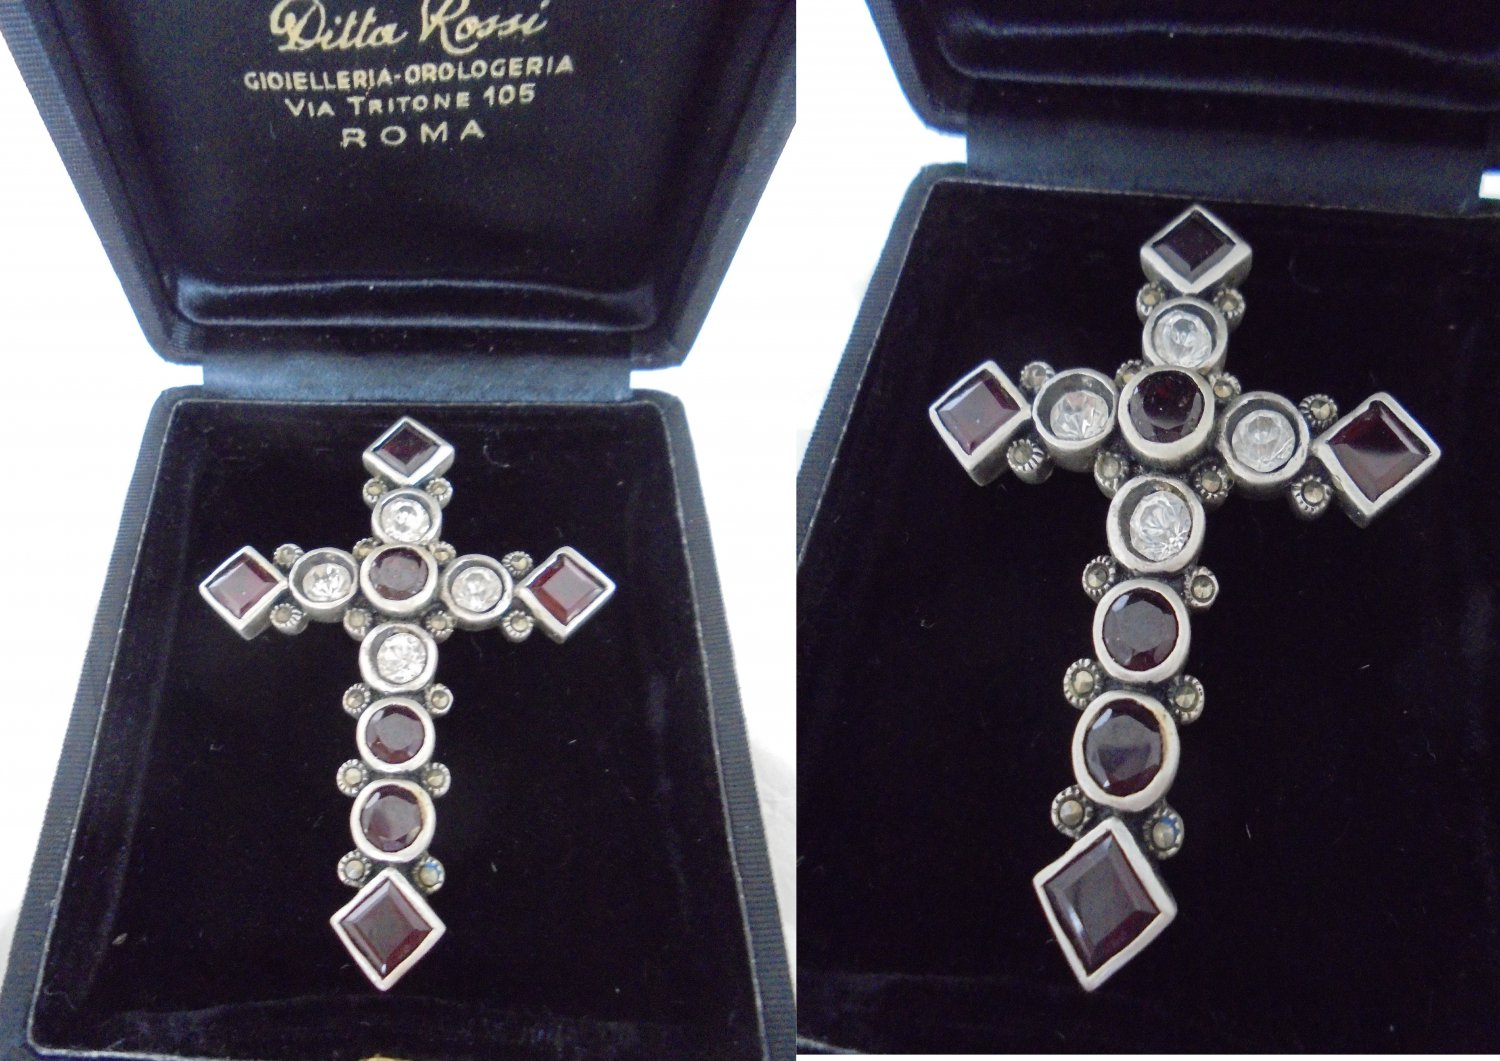 CRUCIFIX cross pendent charm for necklace in SILVER STERLING 925 and Swarovski crystals